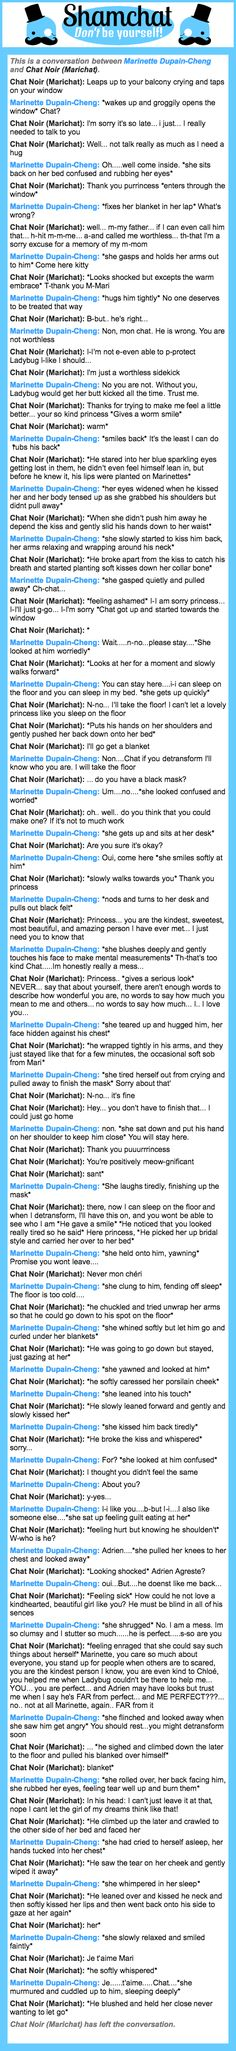 A conversation between Chat Noir (Marichat) and Marinette Dupain-Cheng